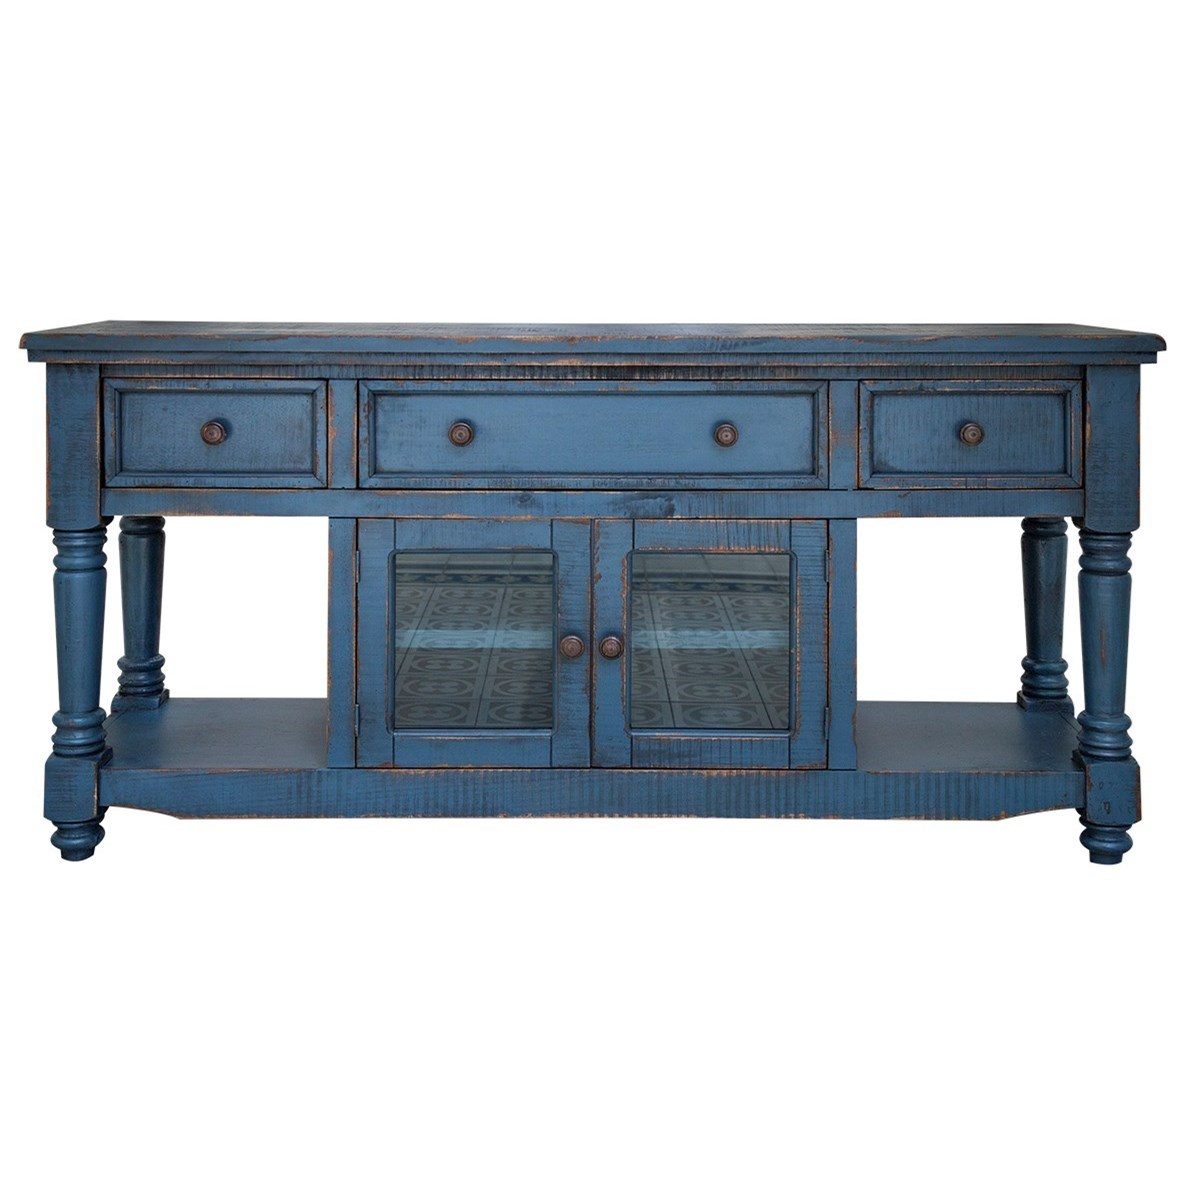 "Aruba 70"" TV Stand with 4 Drawers and 2 Doors at Sadler's Home Furnishings"